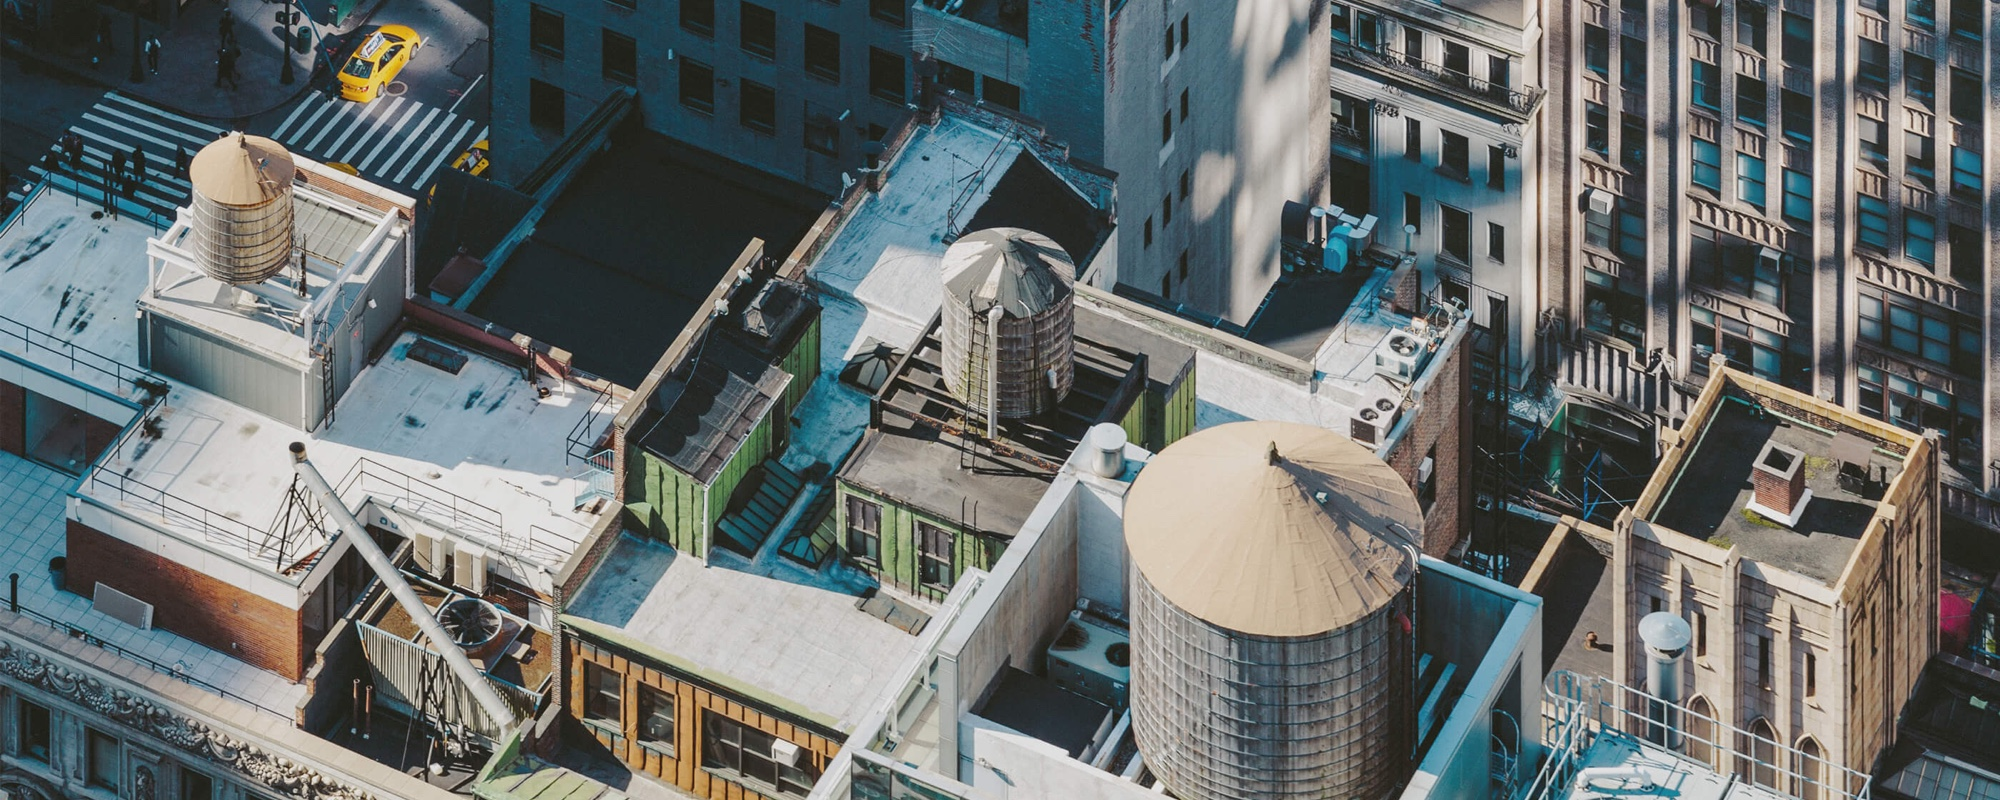 Manhattan rooftops with water towers